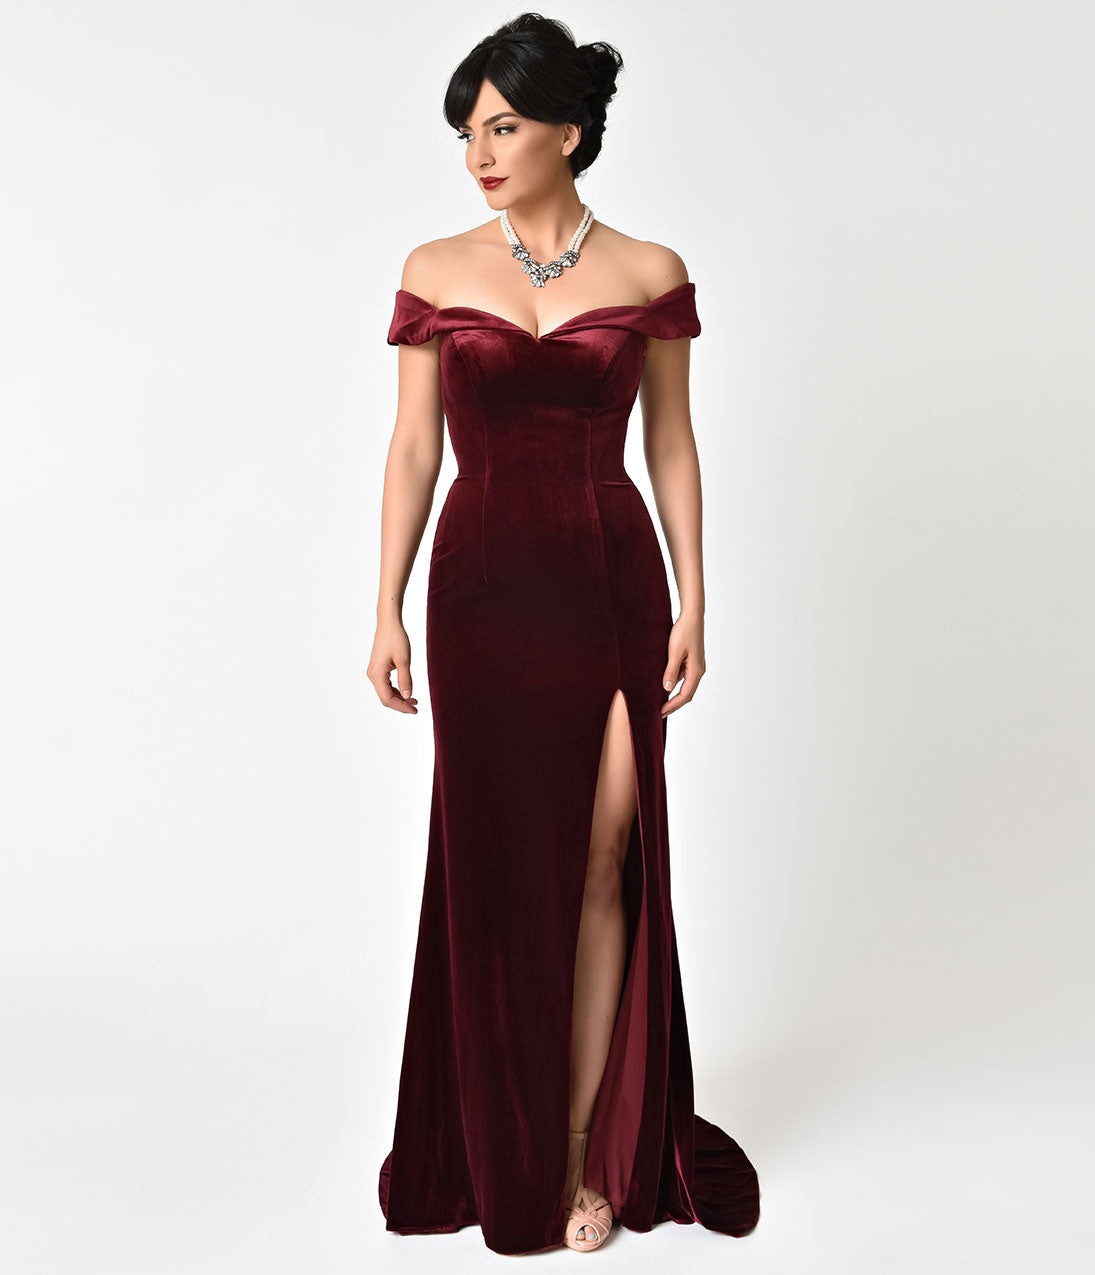 1940s Evening, Prom, Party, Cocktail Dresses & Ball Gowns Burgundy Velvet Bateau Neckline Cap Sleeve Gown $180.00 AT vintagedancer.com